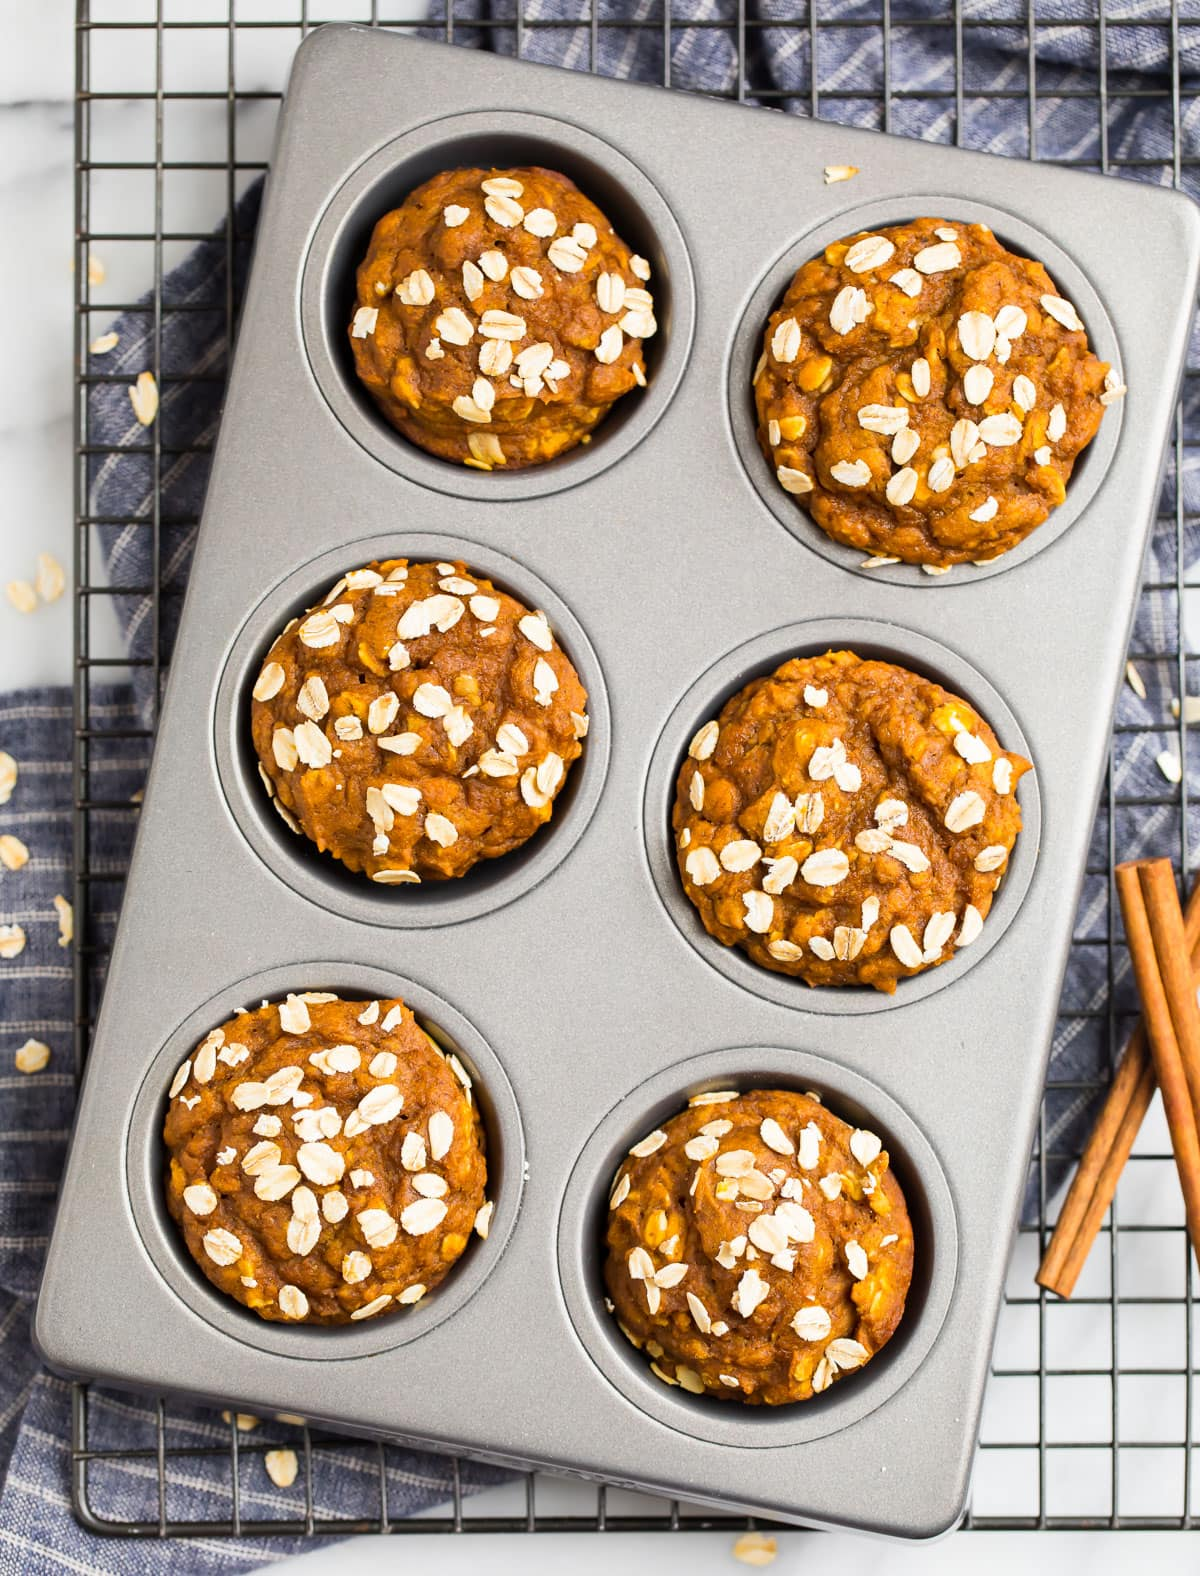 Healthy pumpkin muffins with oats on top